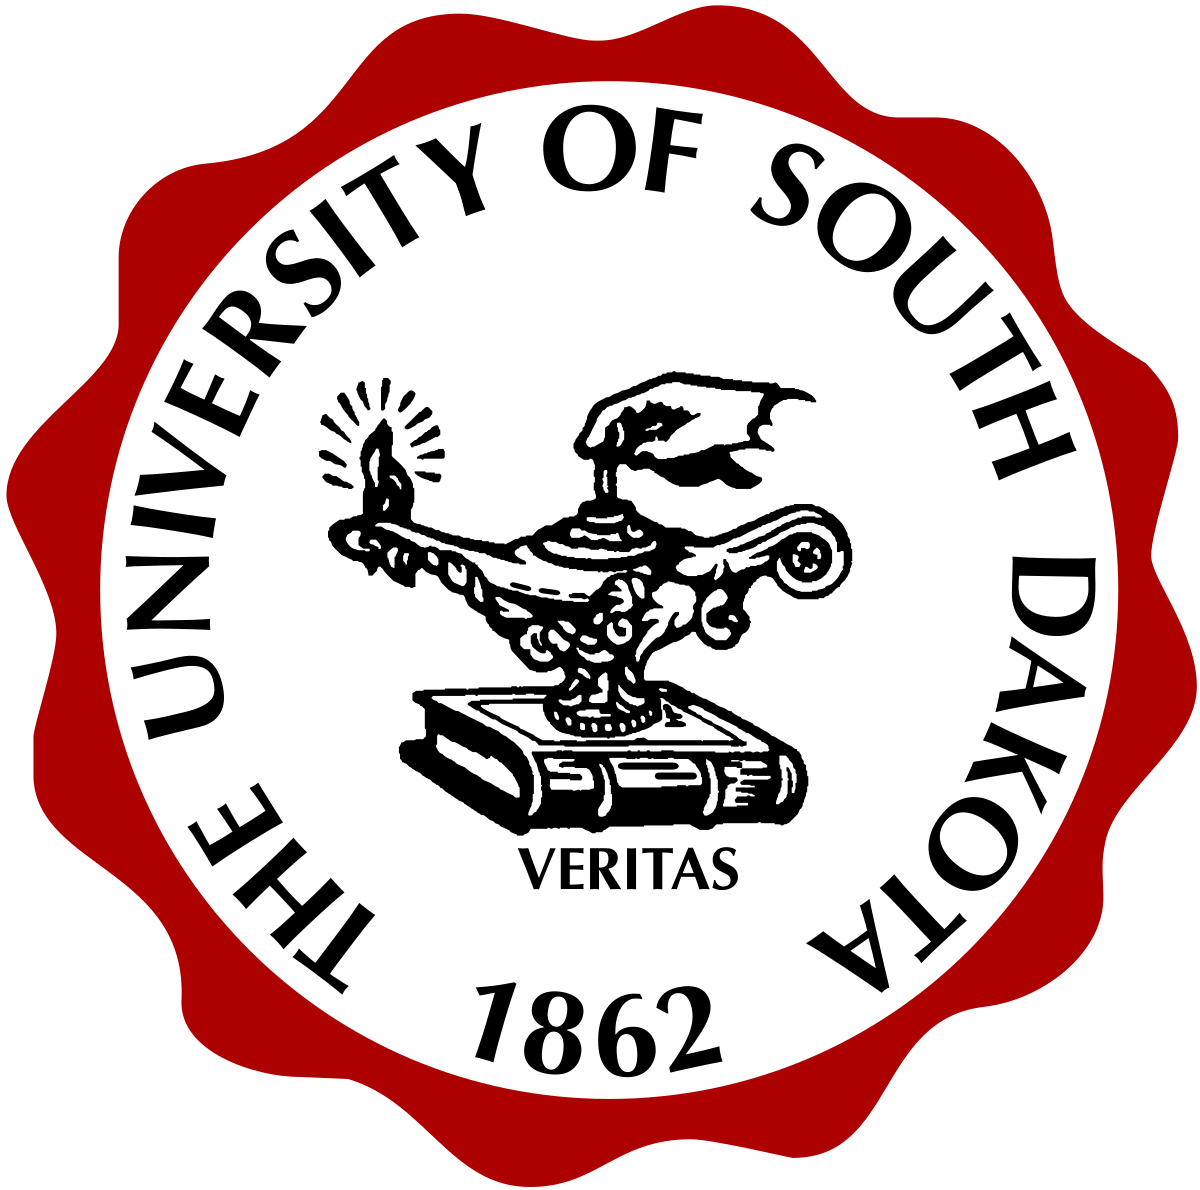 University Of South Dakota - Wikipedia intended for University Of South Dakota School Schedule